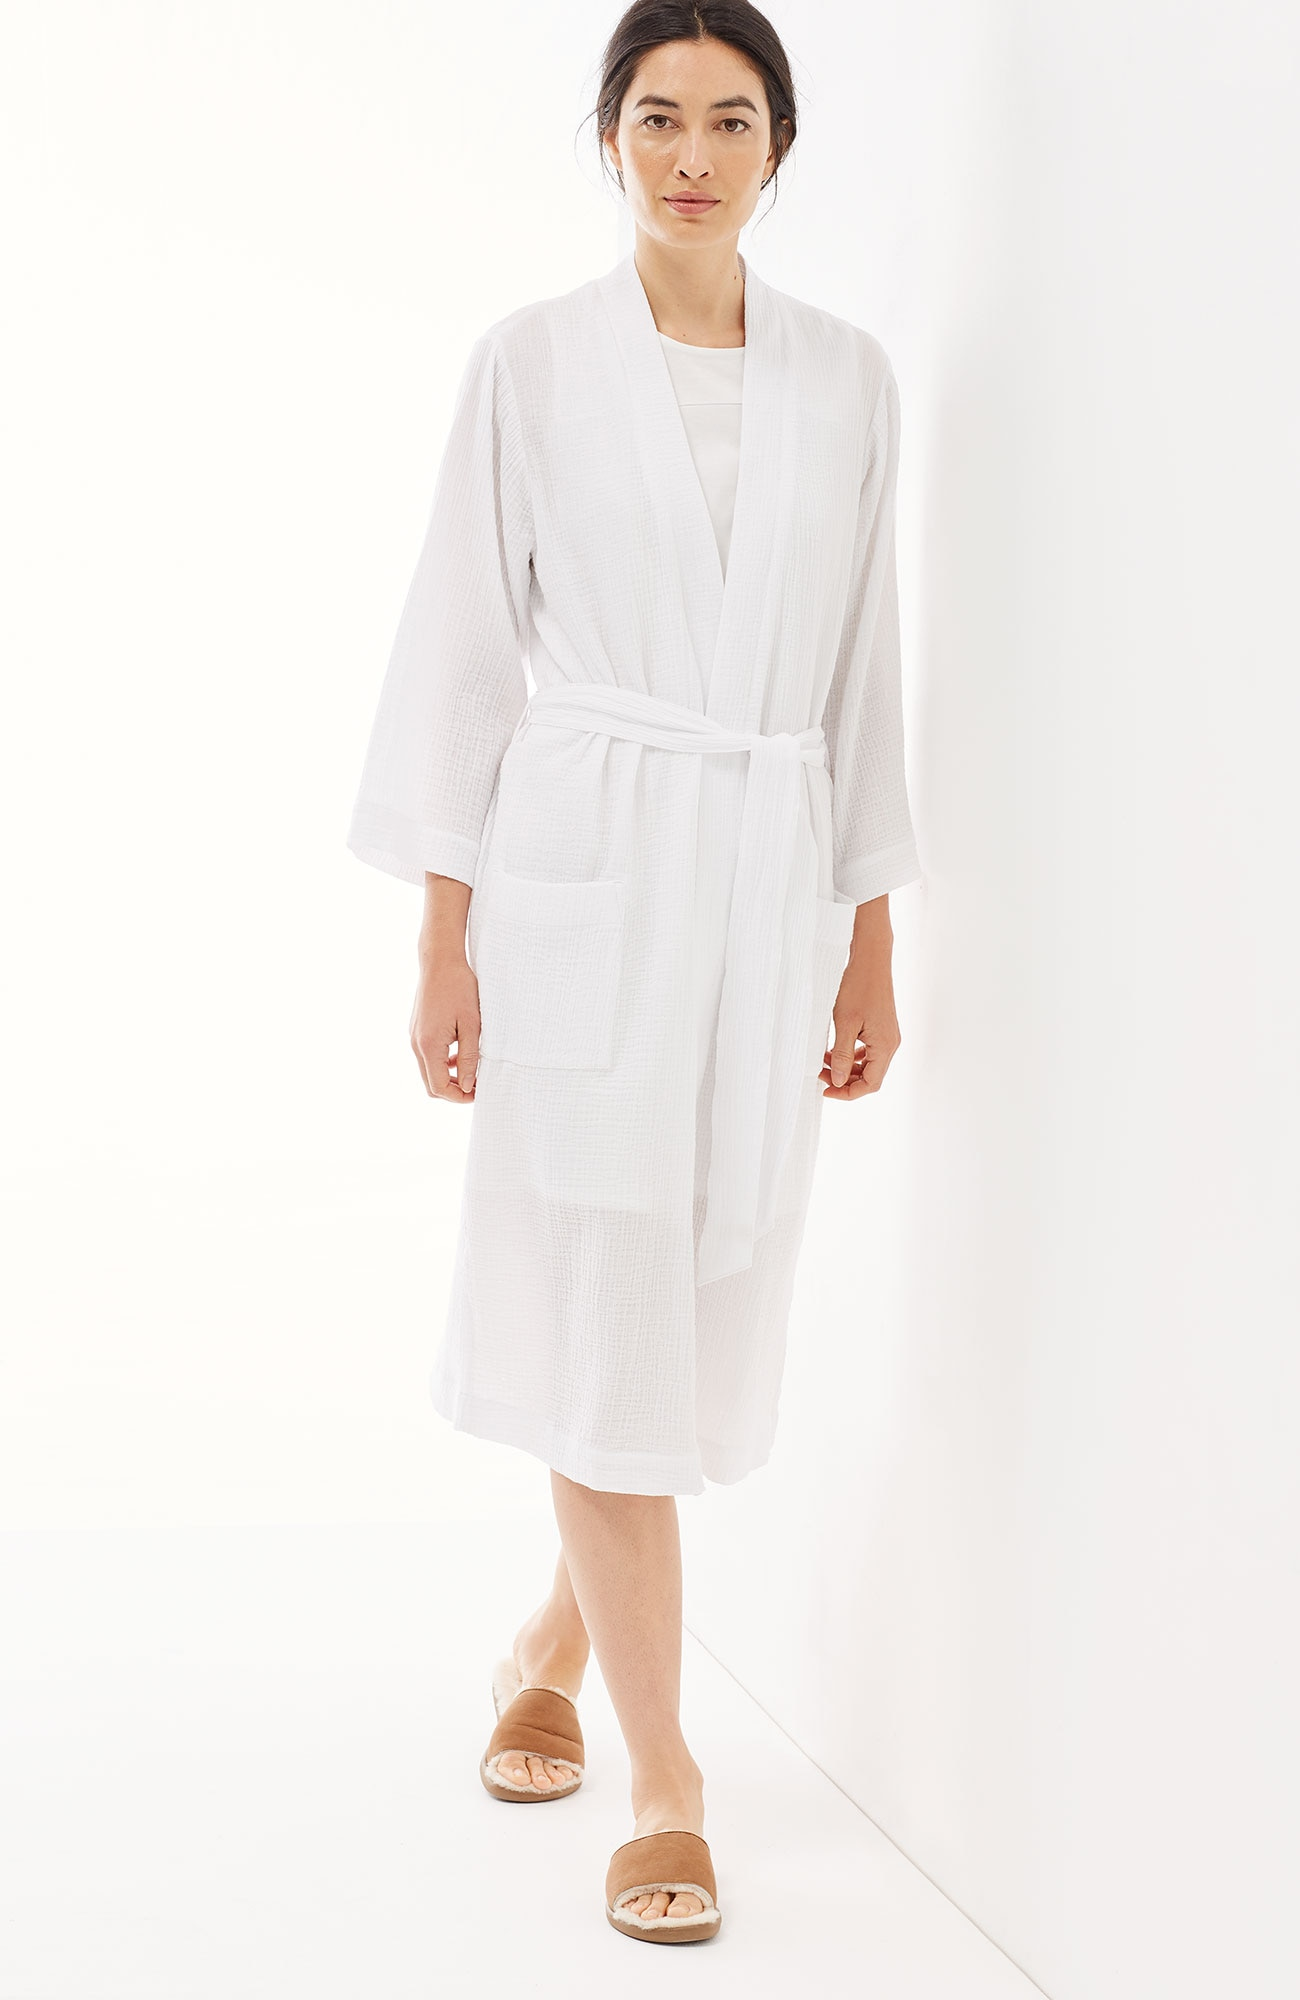 Pure Jill Sleep textured-cotton robe